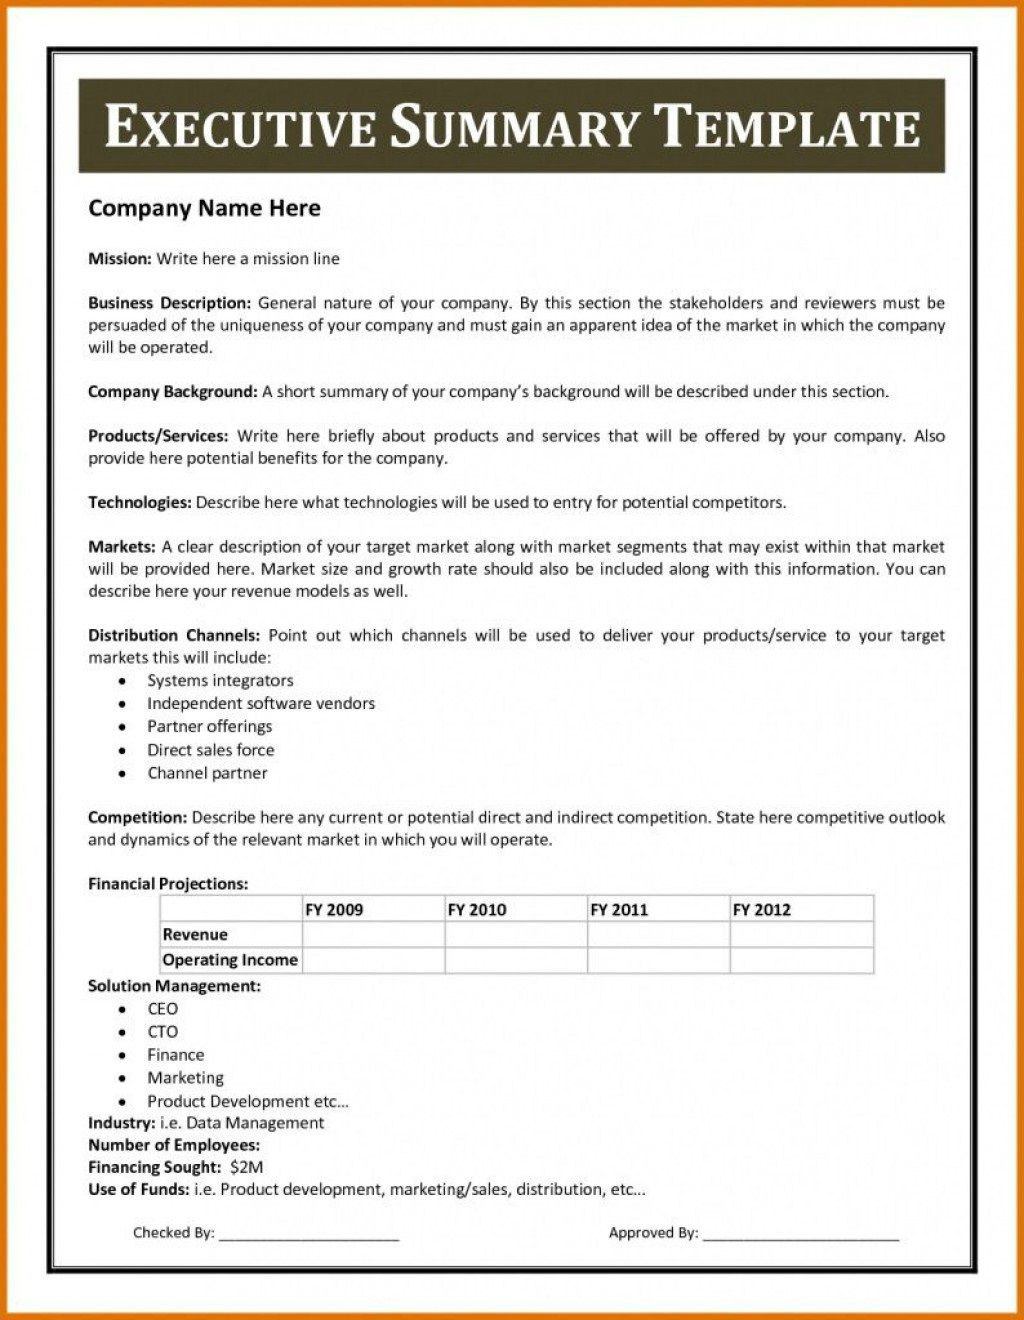 010 Wondrou Executive Summary Word Template Free Download Concept Full